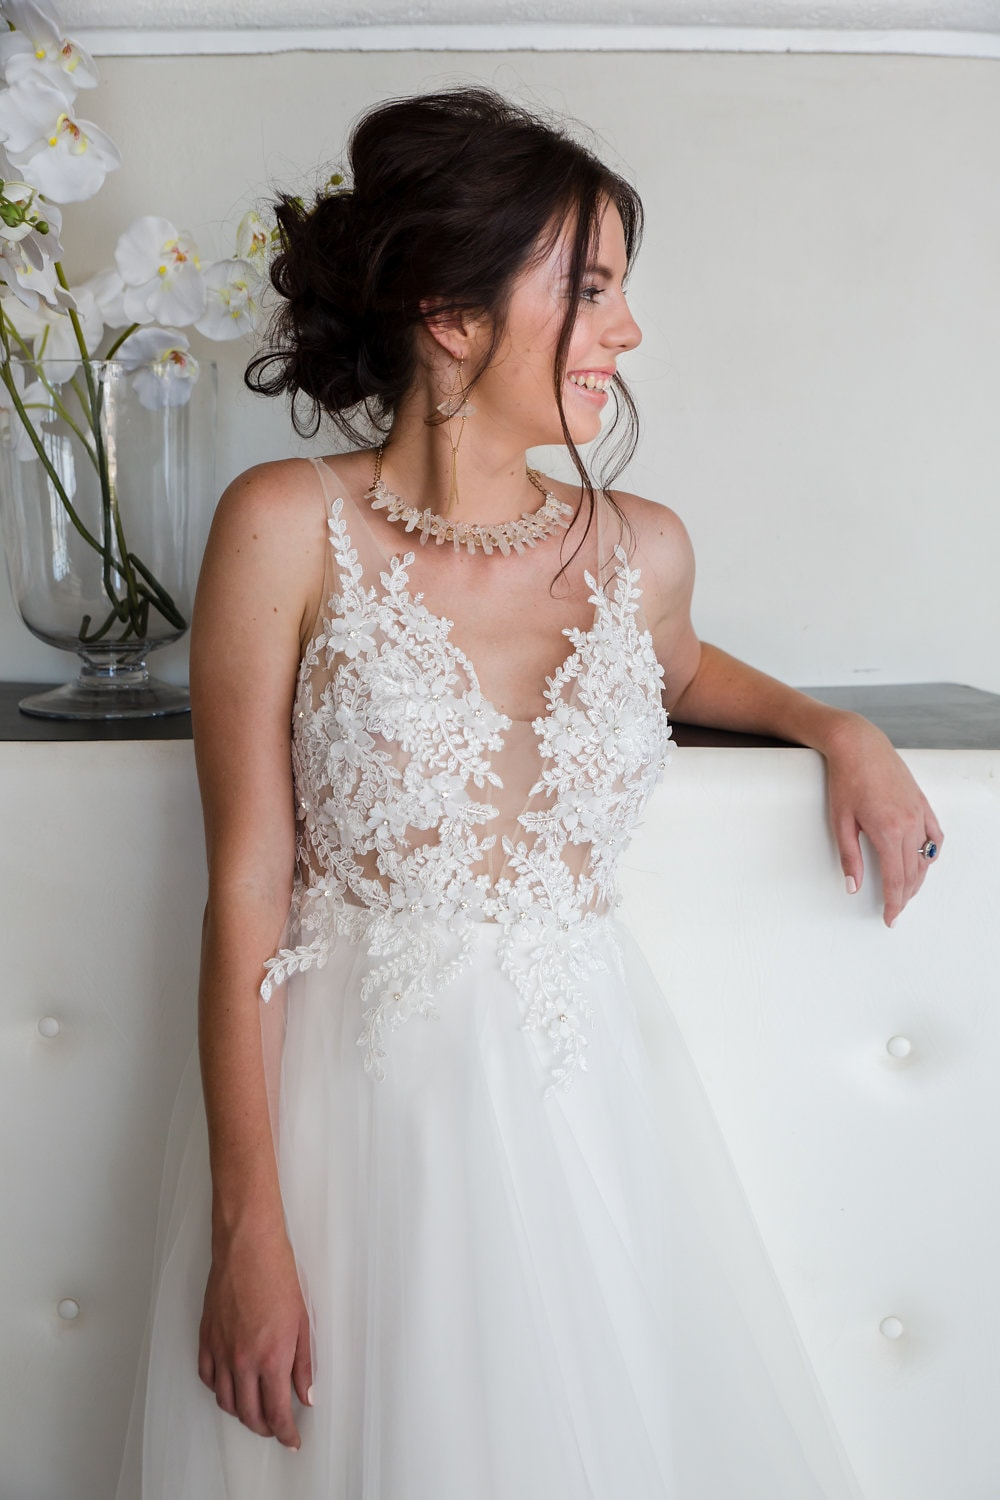 Cindy Bam Sheer Bodice Wedding Dress with Tulle Skirt | Image: Jaqui Franco